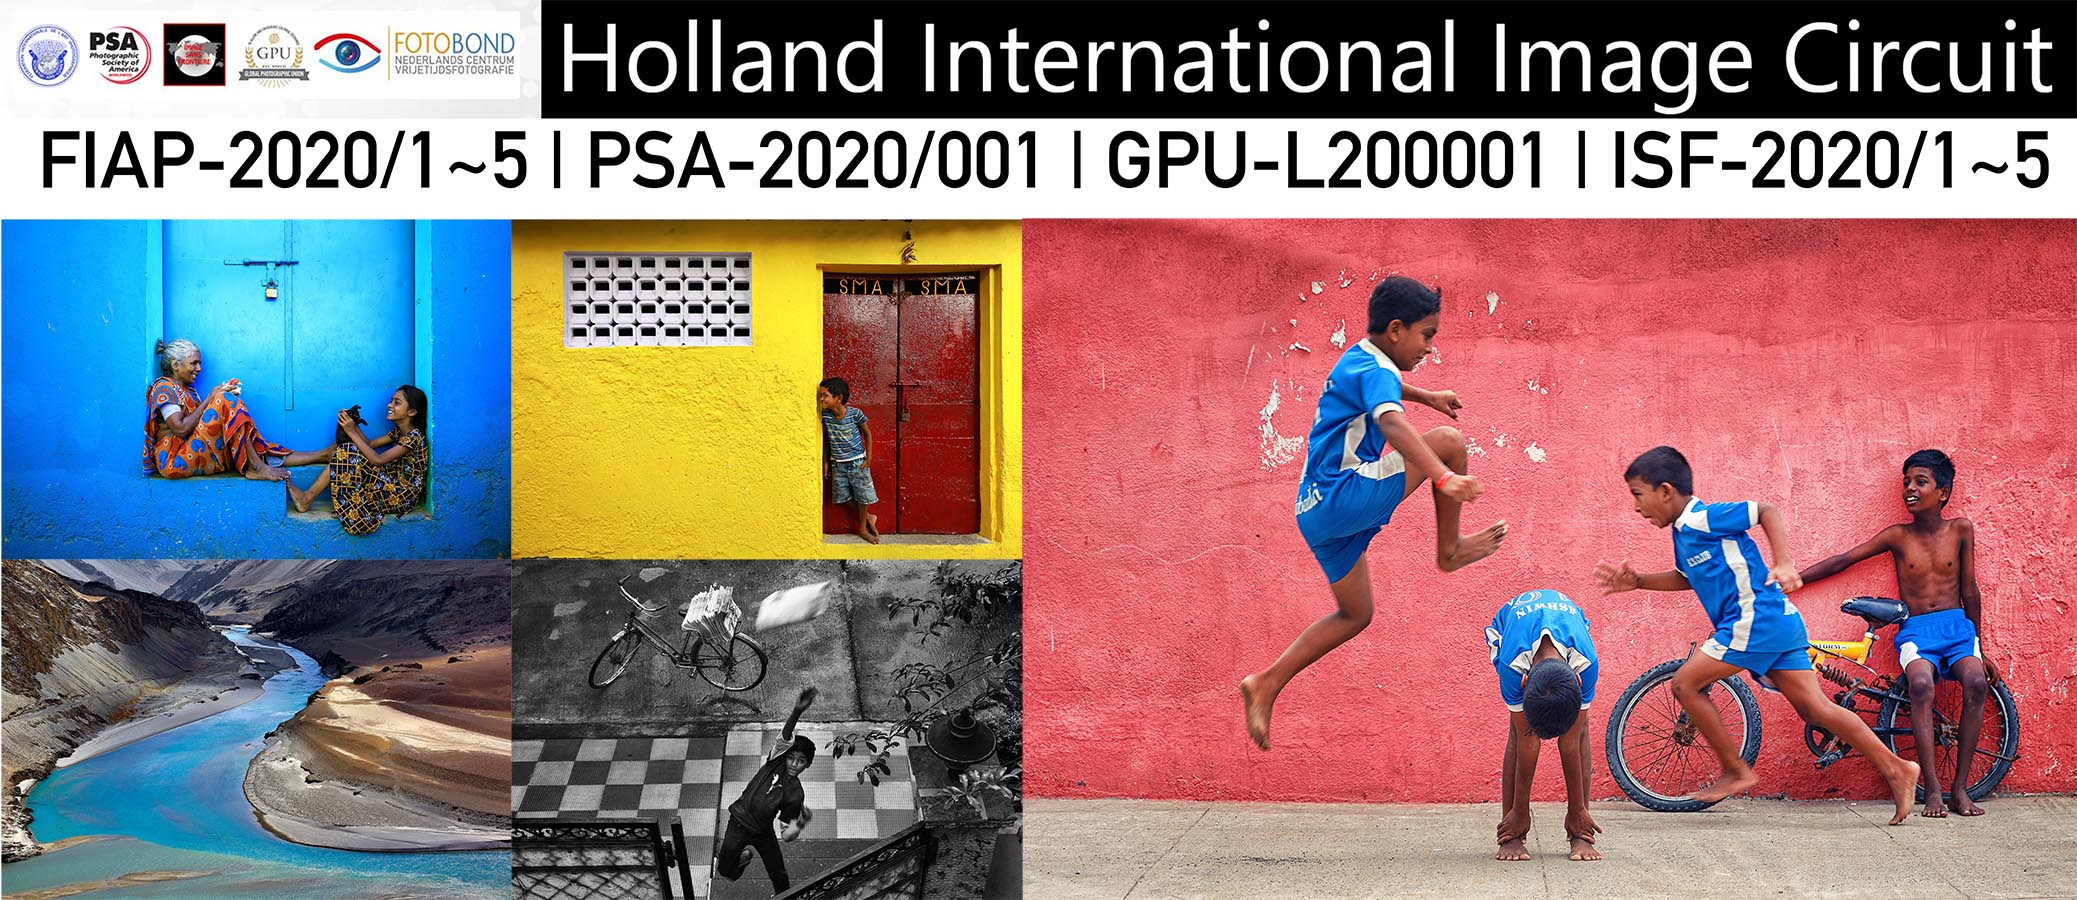 12th Holland International Image Circuit -2020